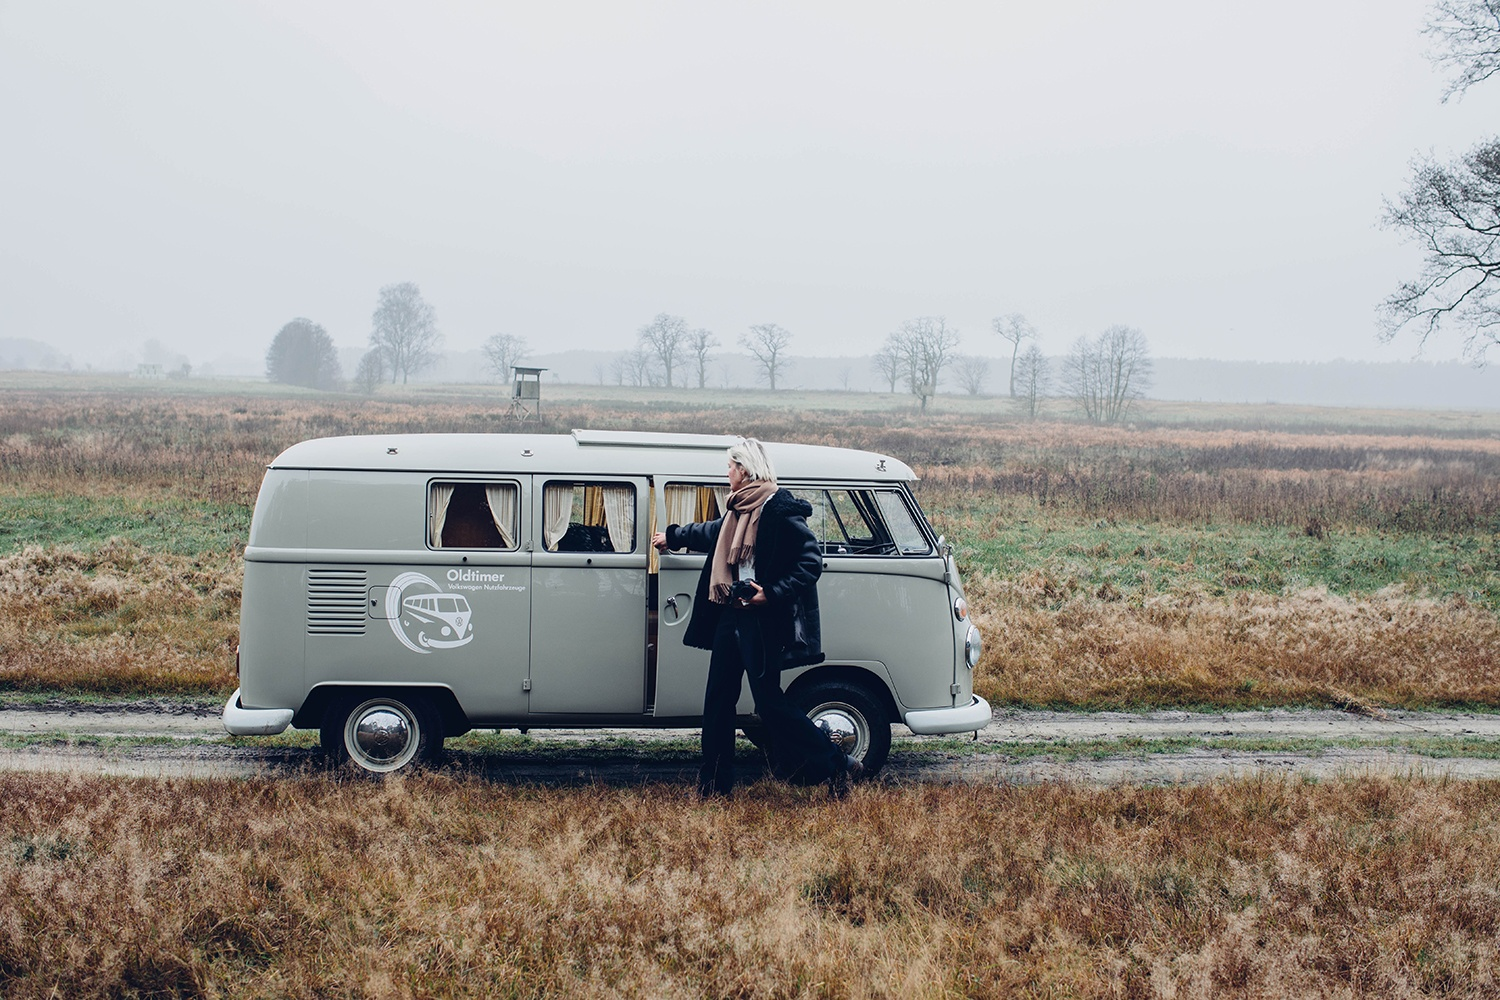 A foogy autumn day on the road with an old VW bus T1